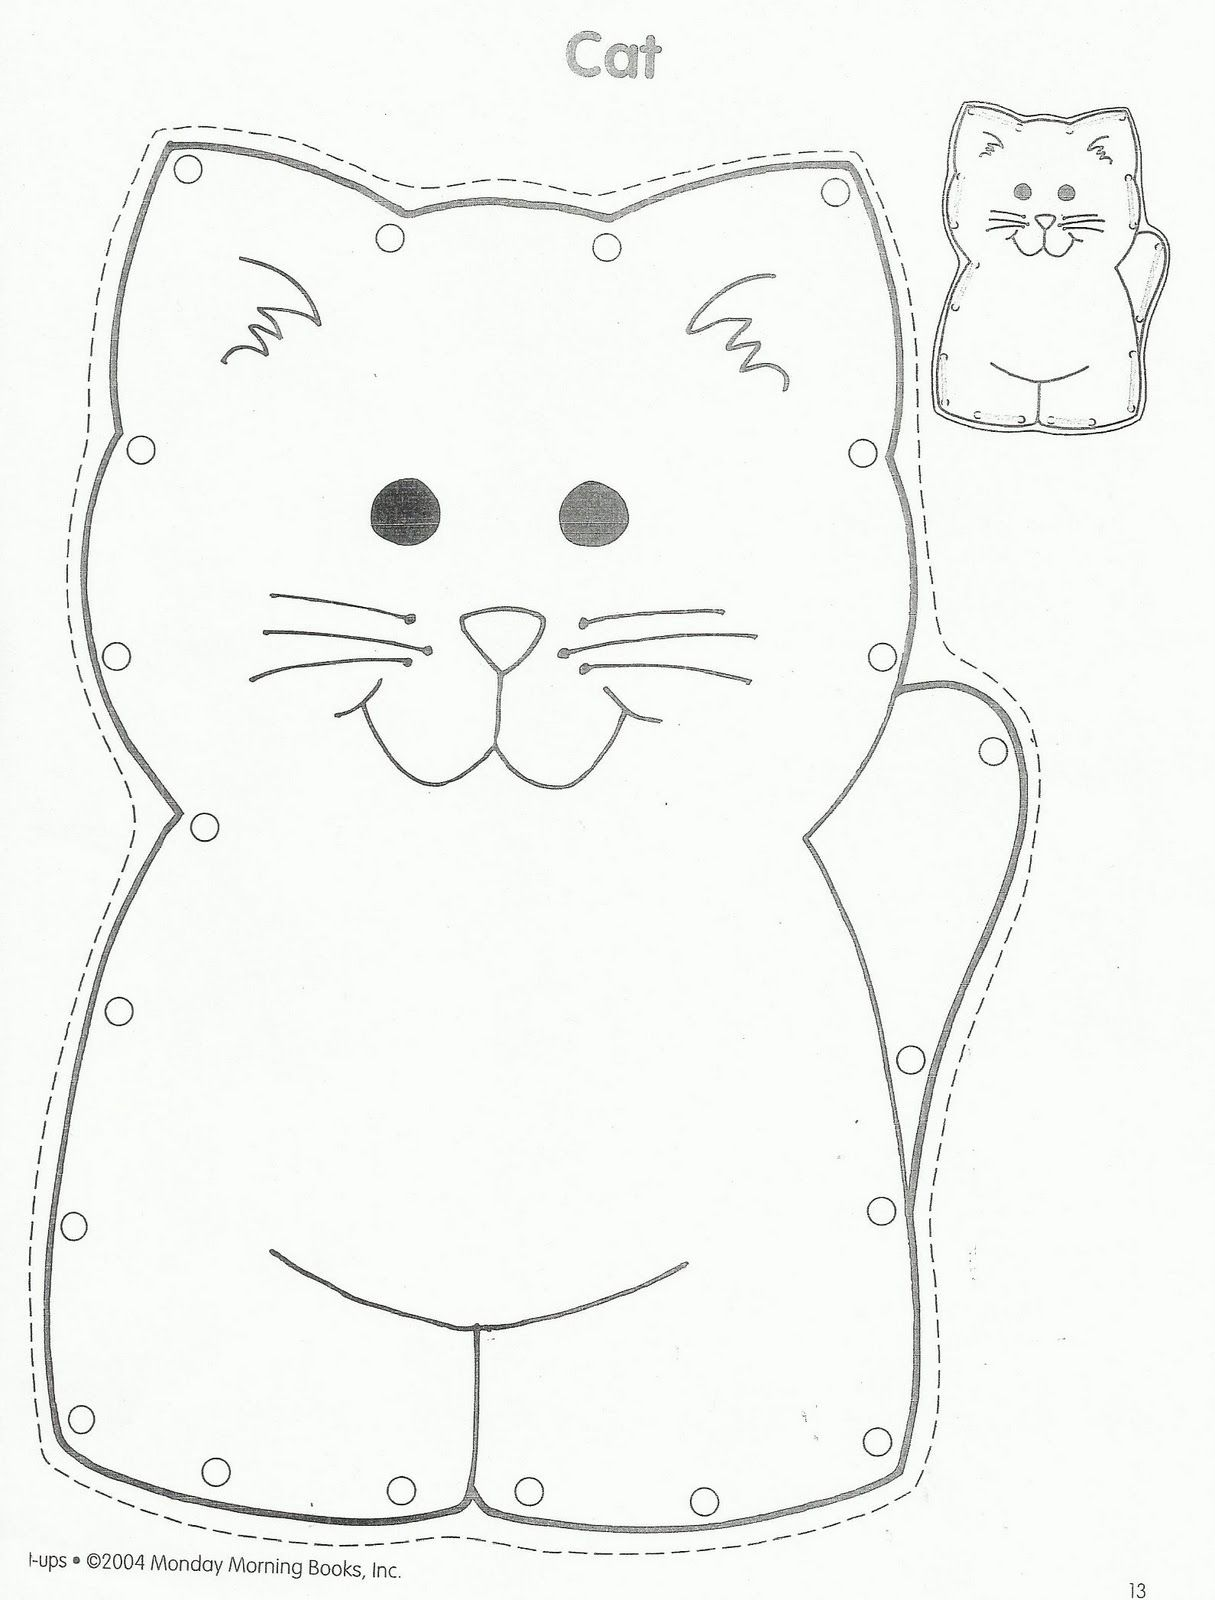 Squish Preschool Ideas Have Children Color Cat And Then Stuff It And Have Them Thread It